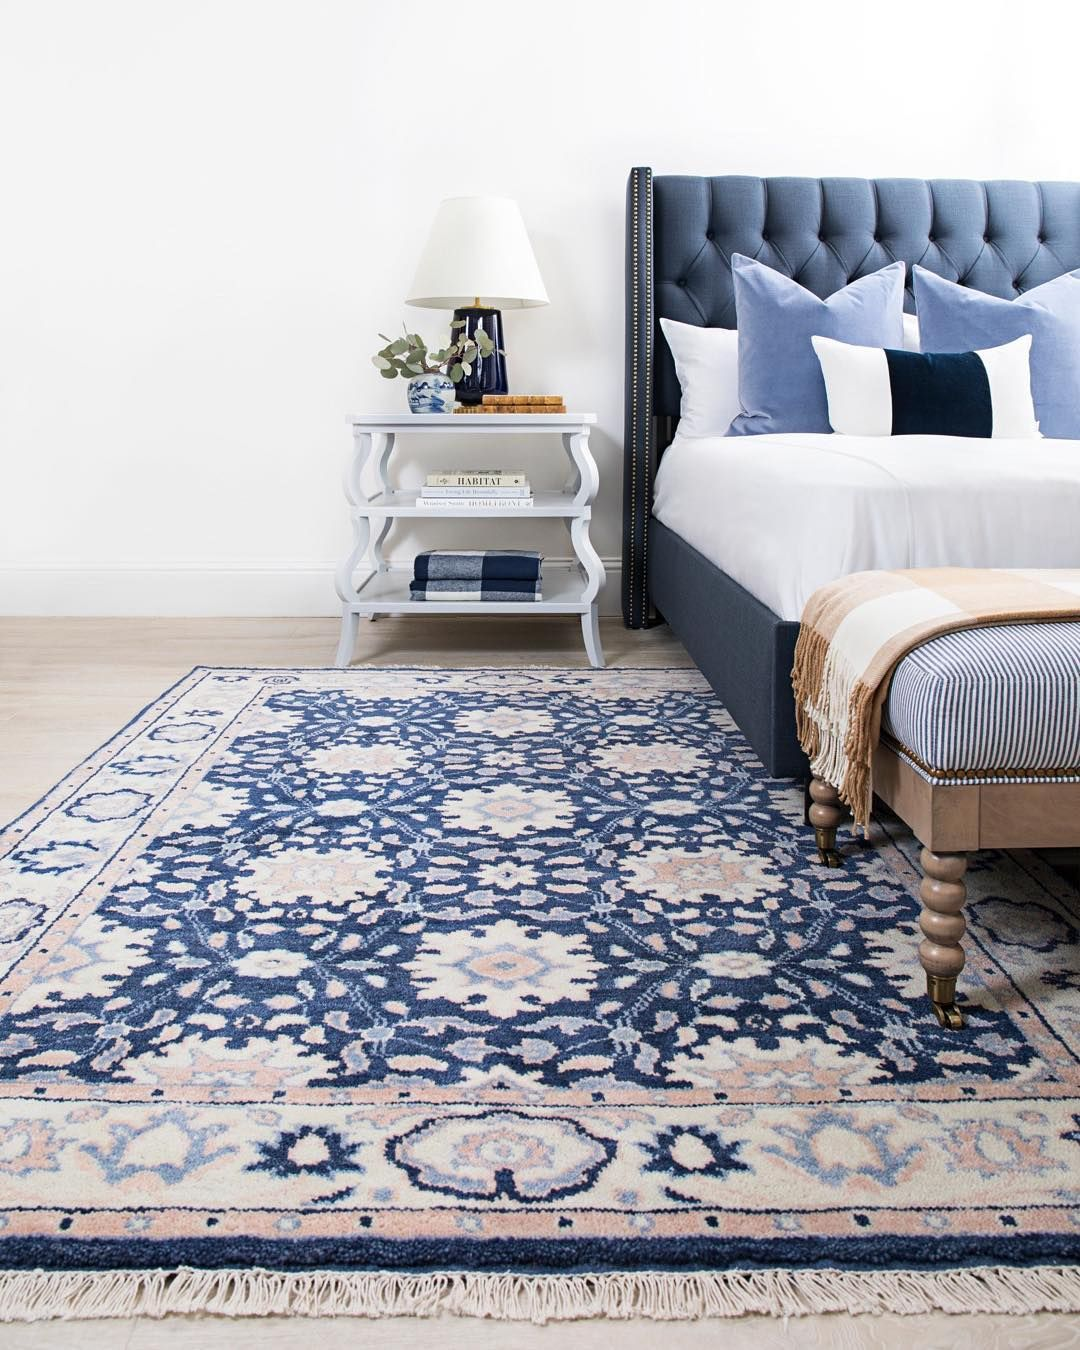 Why Not Wake Up Every Morning With A Plush Luxurious Rug Underfoot Classic Navy And Neutrals Make A B Blue Rug Bedroom Blue And White Rug Caitlin Wilson Rugs